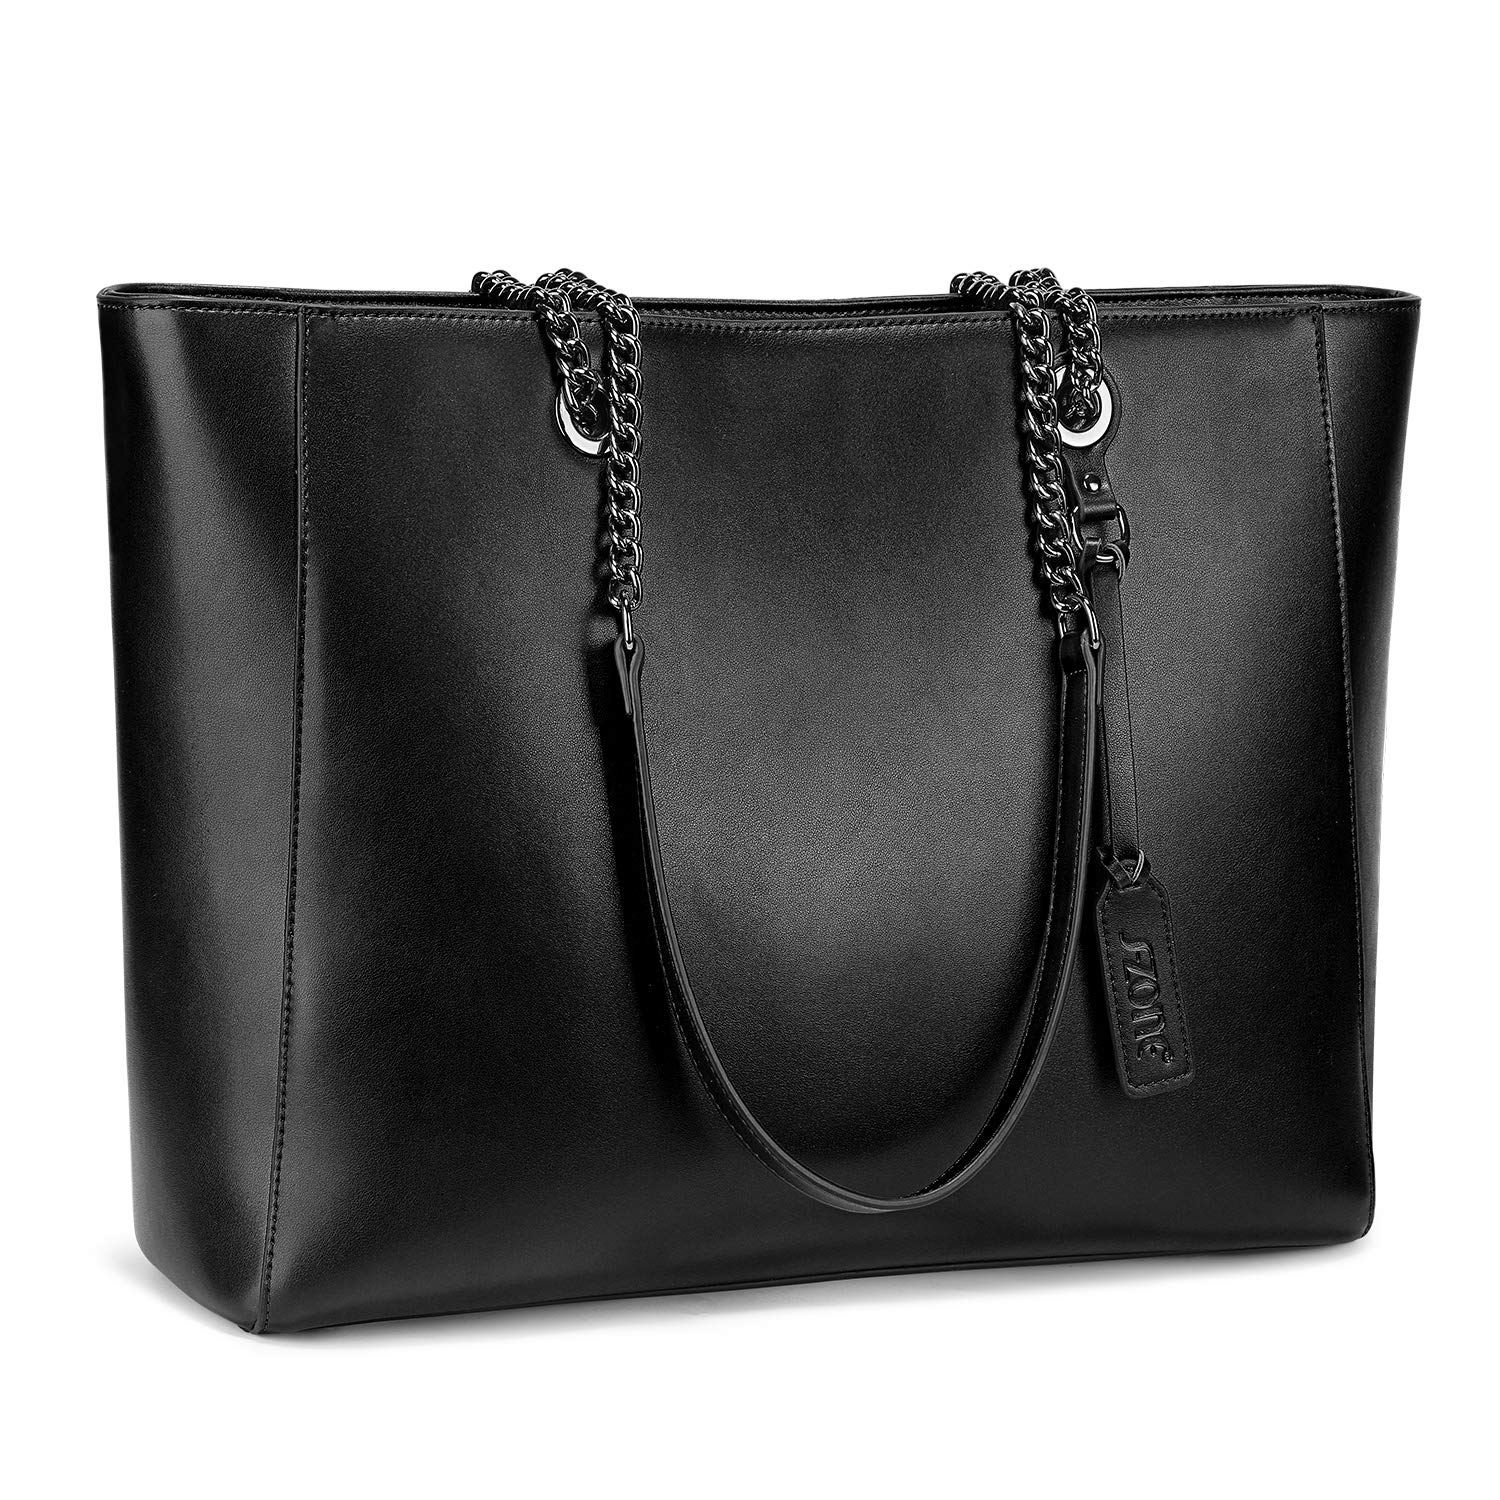 S-ZONE Women Leather Tote Bag Genuine Leather Shoulder Bag Fit Up to 15.6 in Laptop by S-ZONE (Image #1)